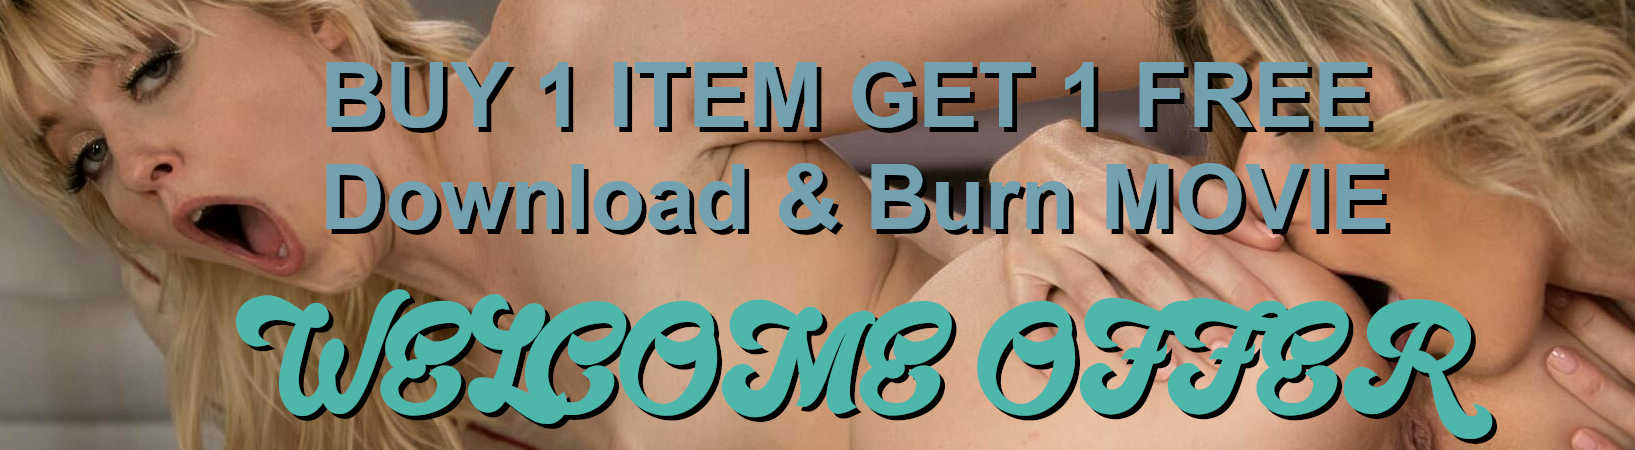 BUY 1 ITEM GET 1 FREE Download & Burn MOVIE WELCOME OFFER